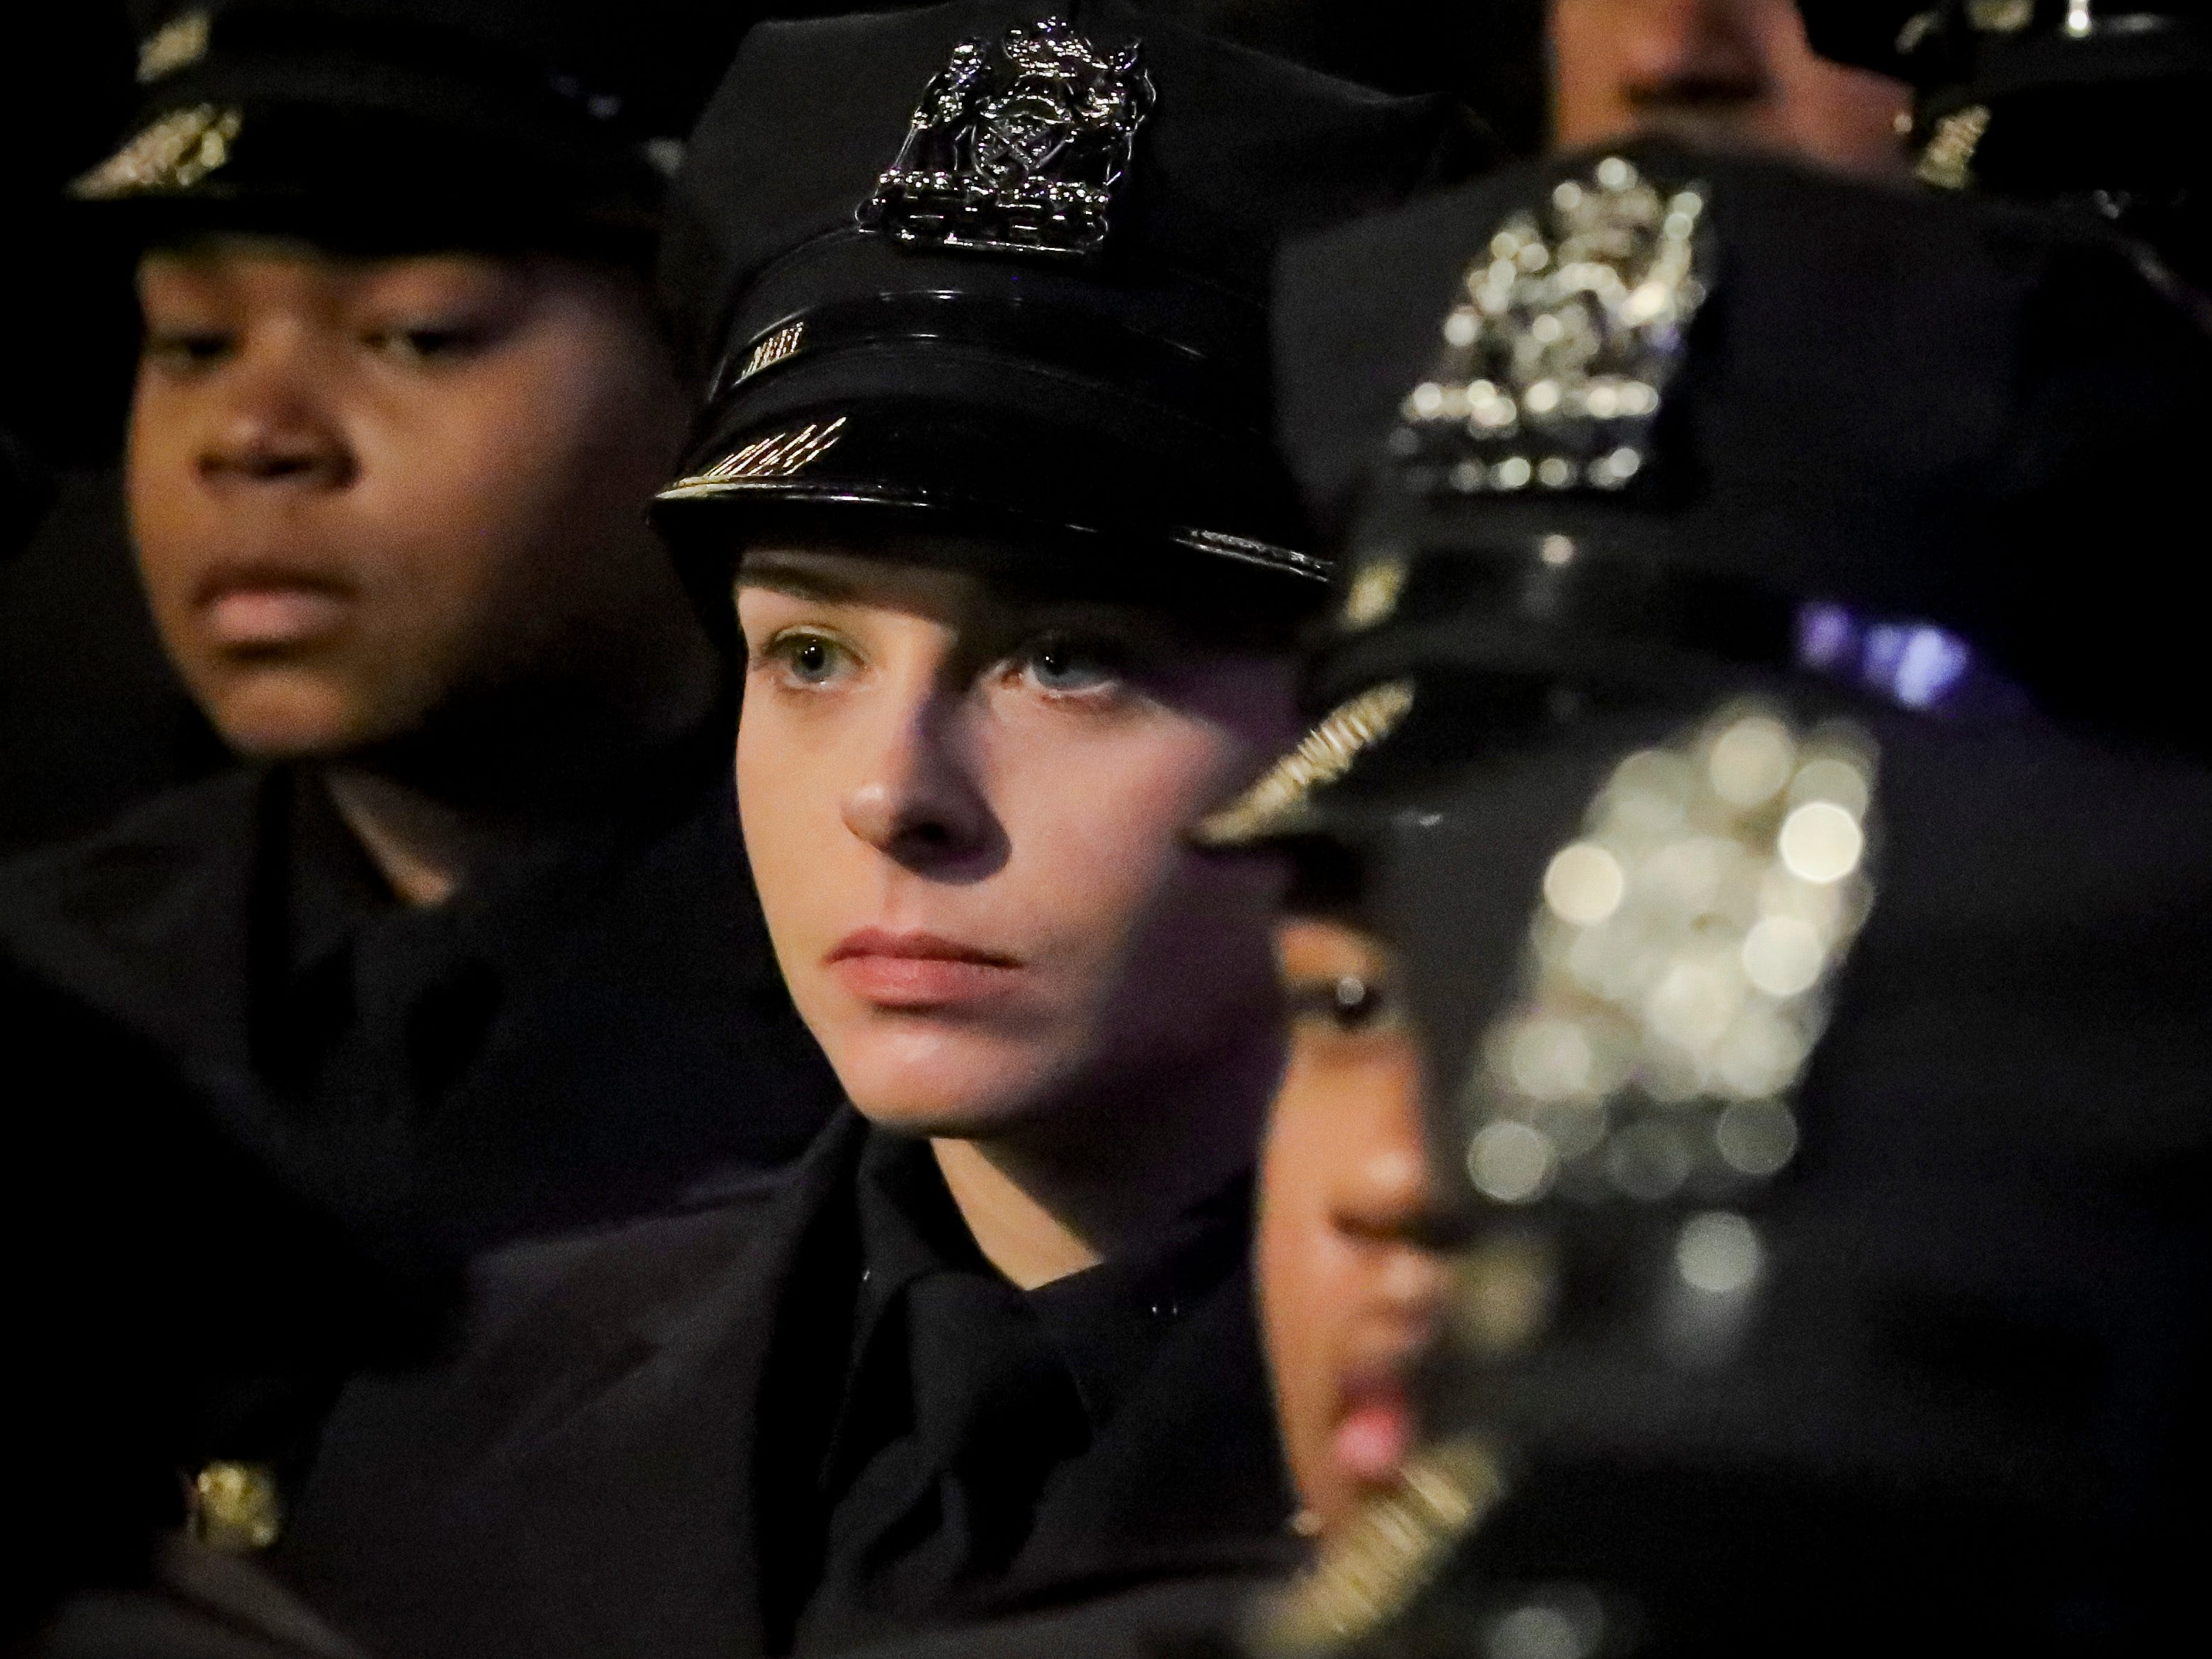 New York City Police Academy graduates listen during their graduation ceremony, adding 457 new members of the NYPD, Thursday April 18, 2019, in New York.